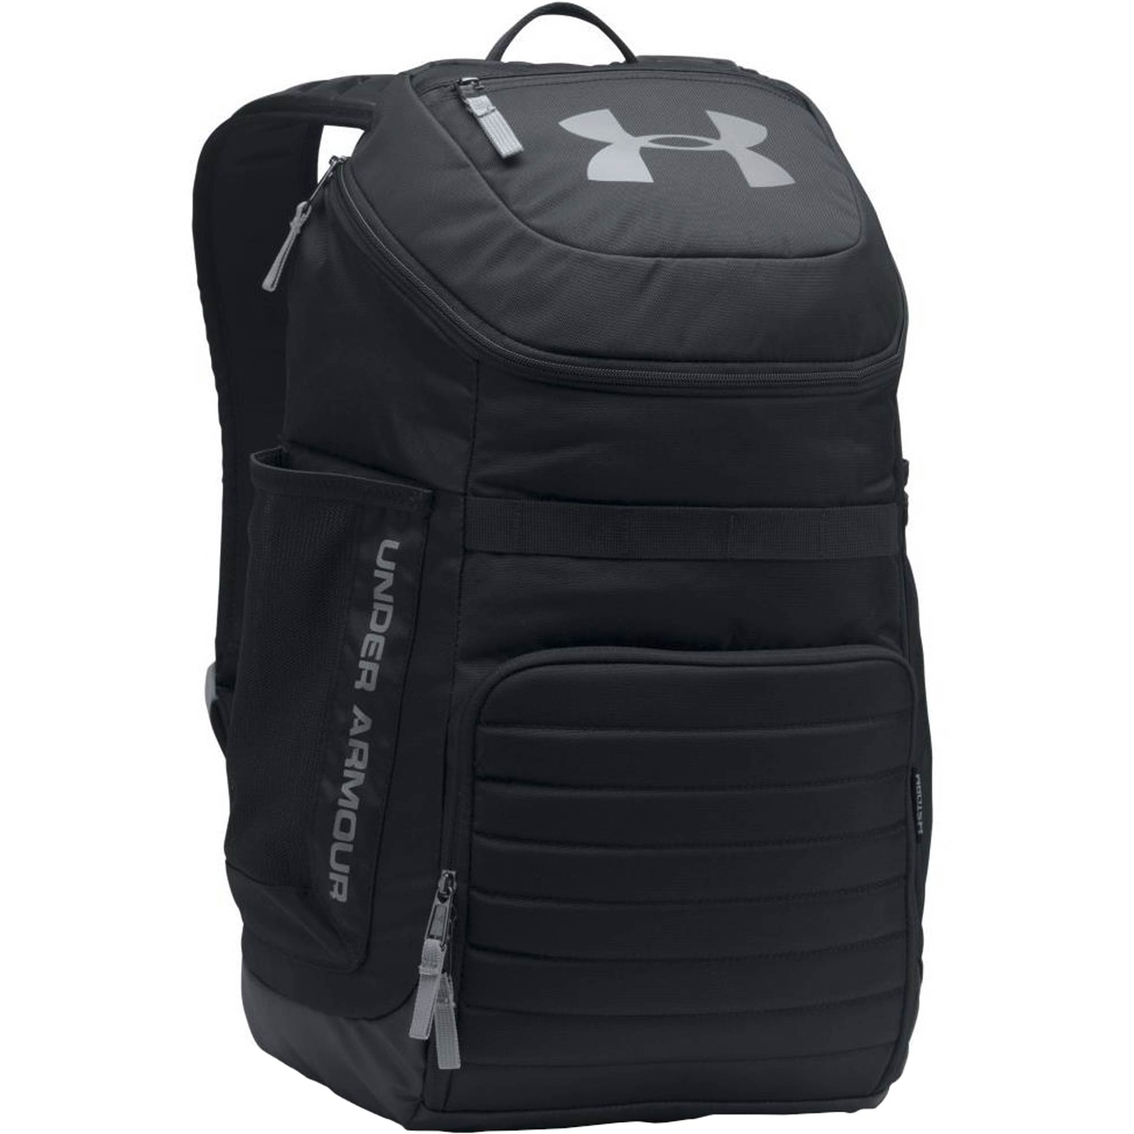 eb191592f973 Under Armour Ua Undeniable 3.0 Backpack